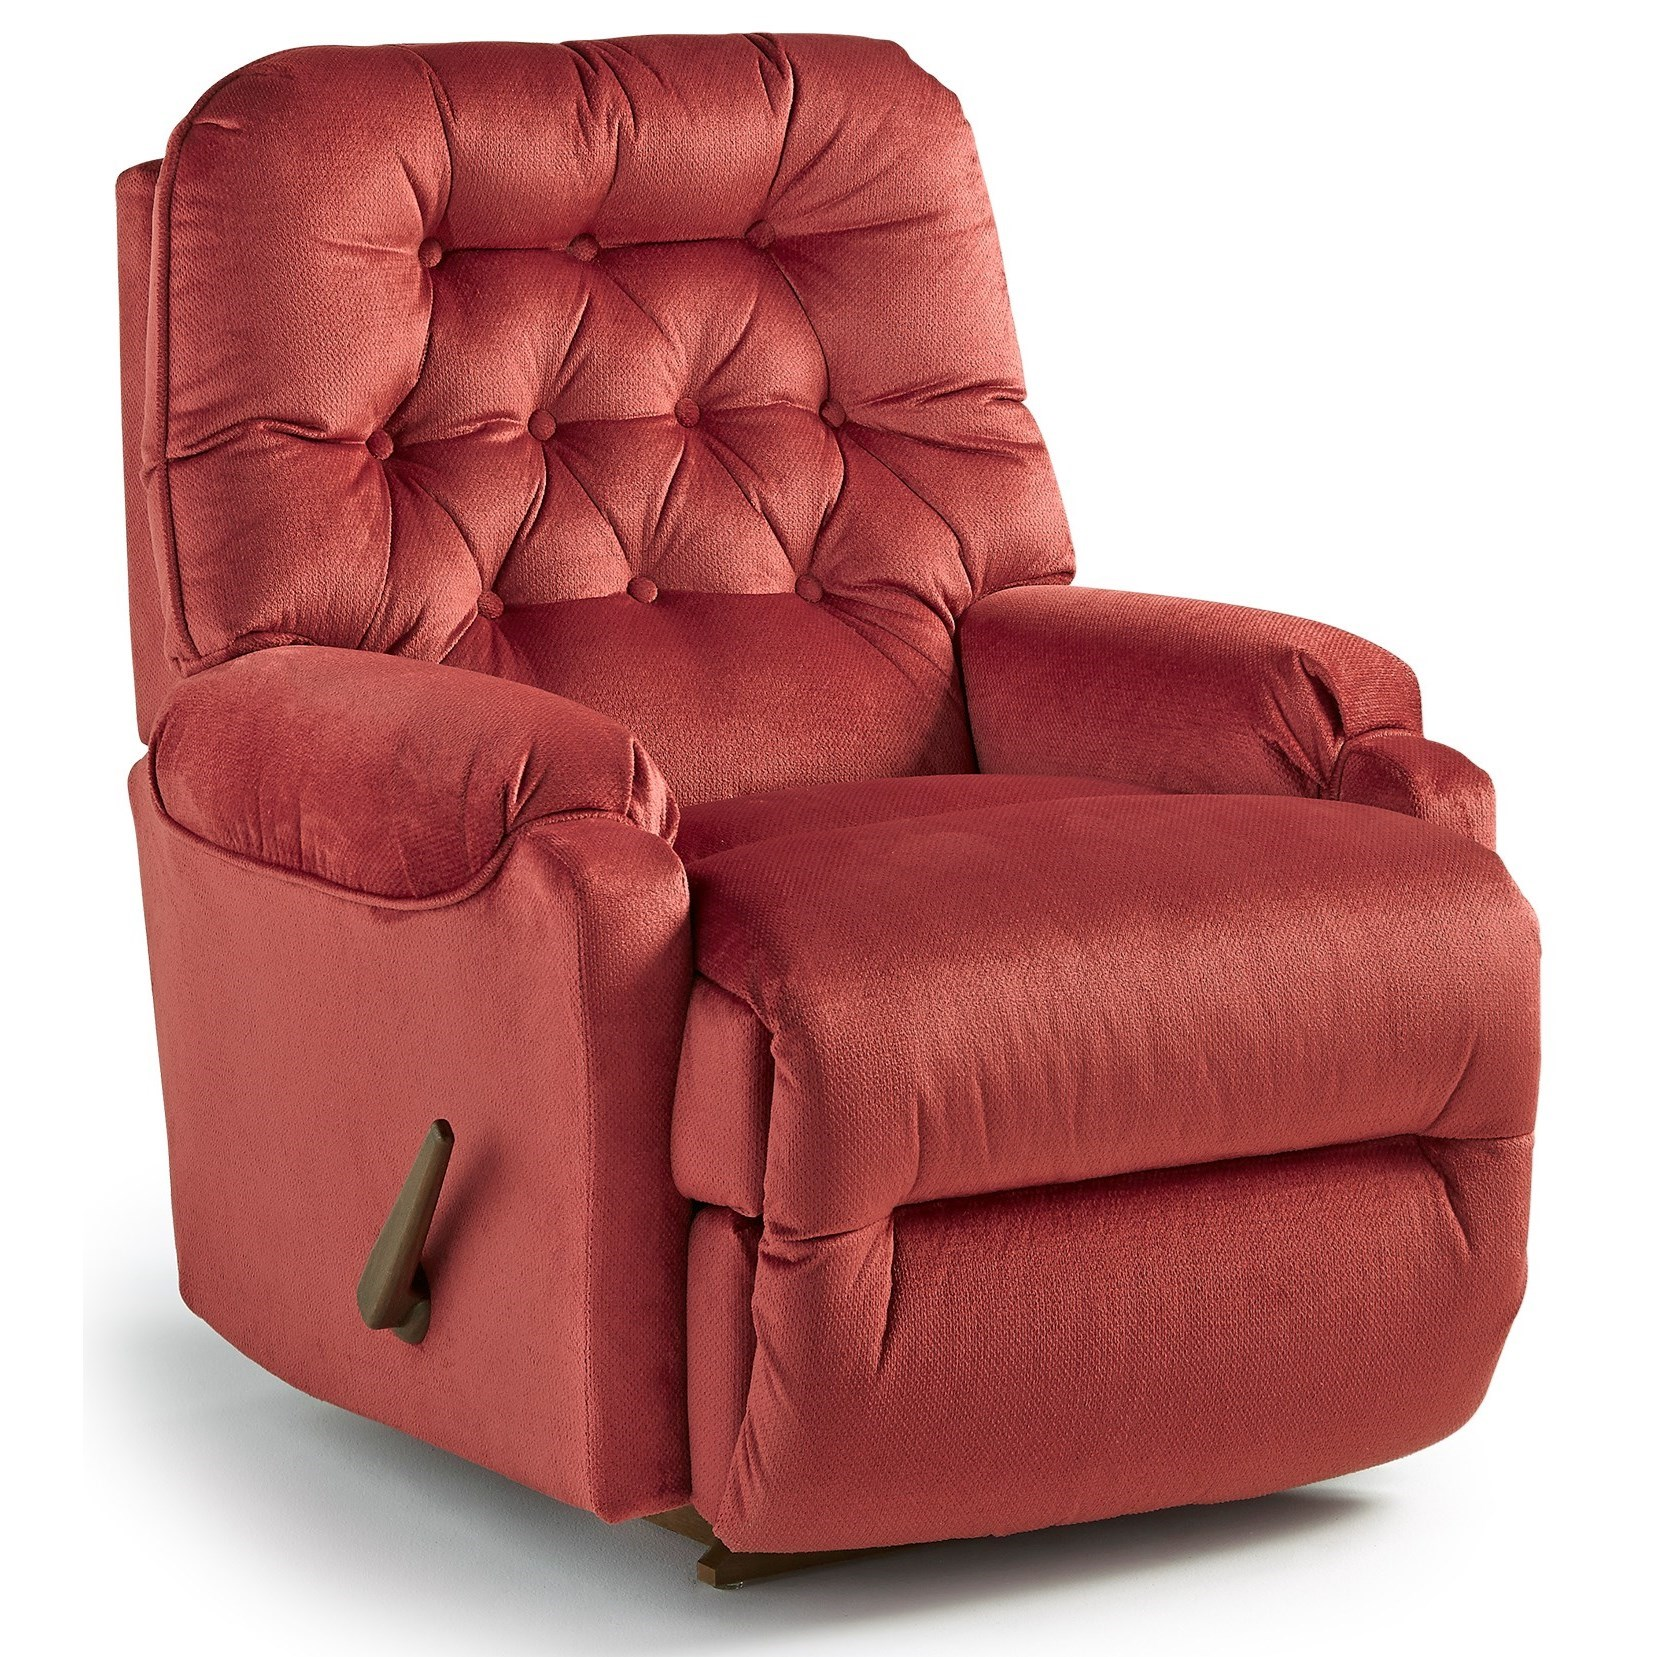 Petite Recliners Brena Power Rocker Recliner by Best Home Furnishings at Pilgrim Furniture City